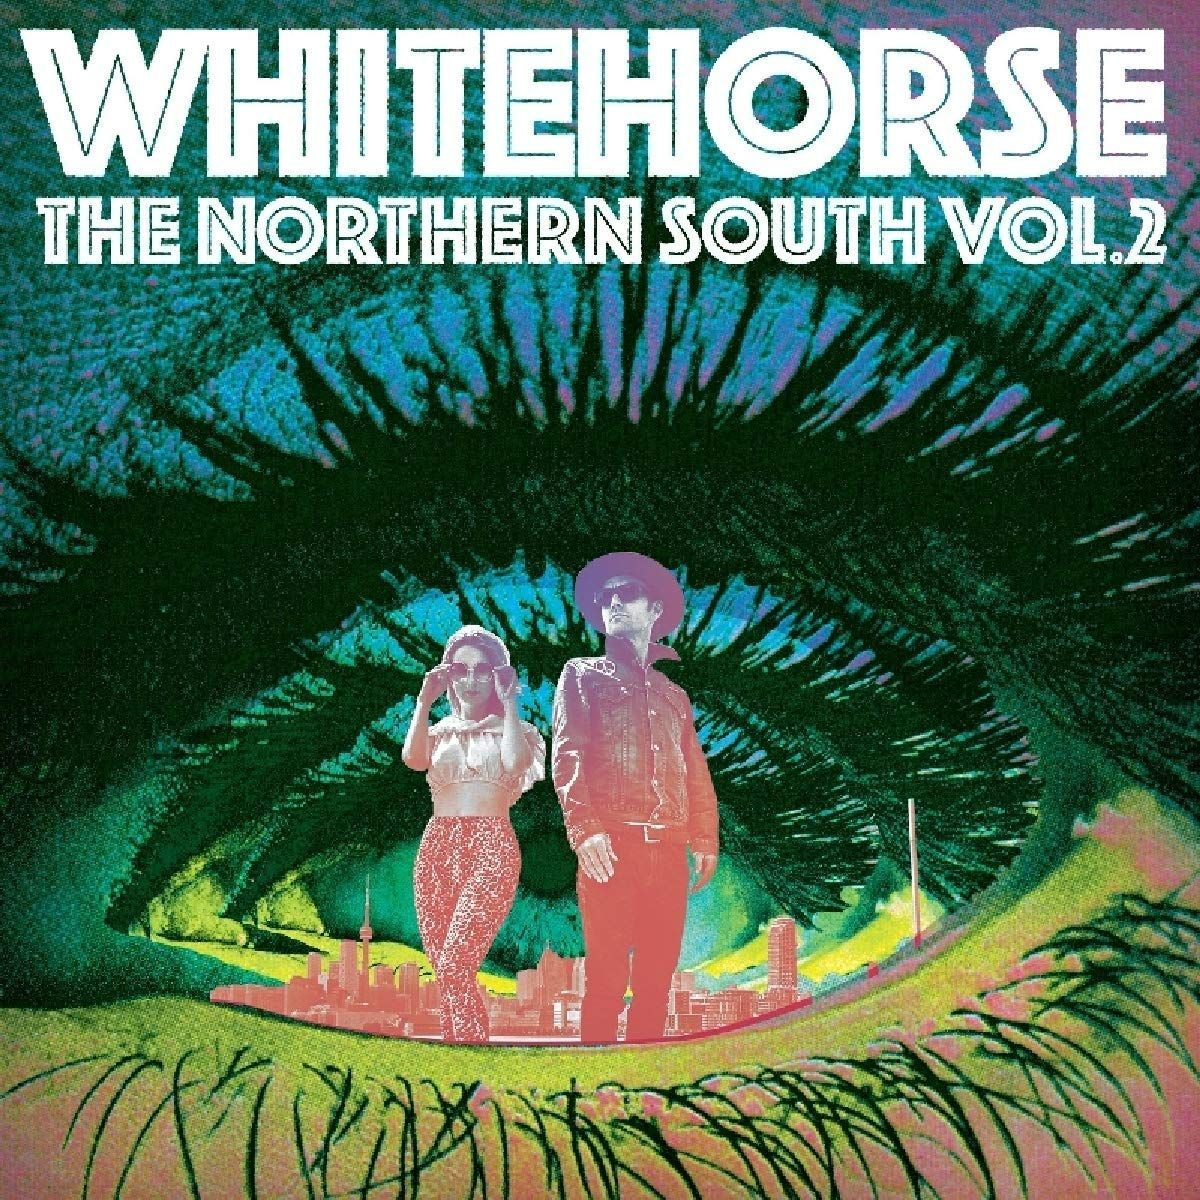 Here S An Album Full Of Oldies But Goldies Whitehorse The Northern South Vol 2 Check Out My Review On Road Trip Songs Album Of The Year Music Playlist